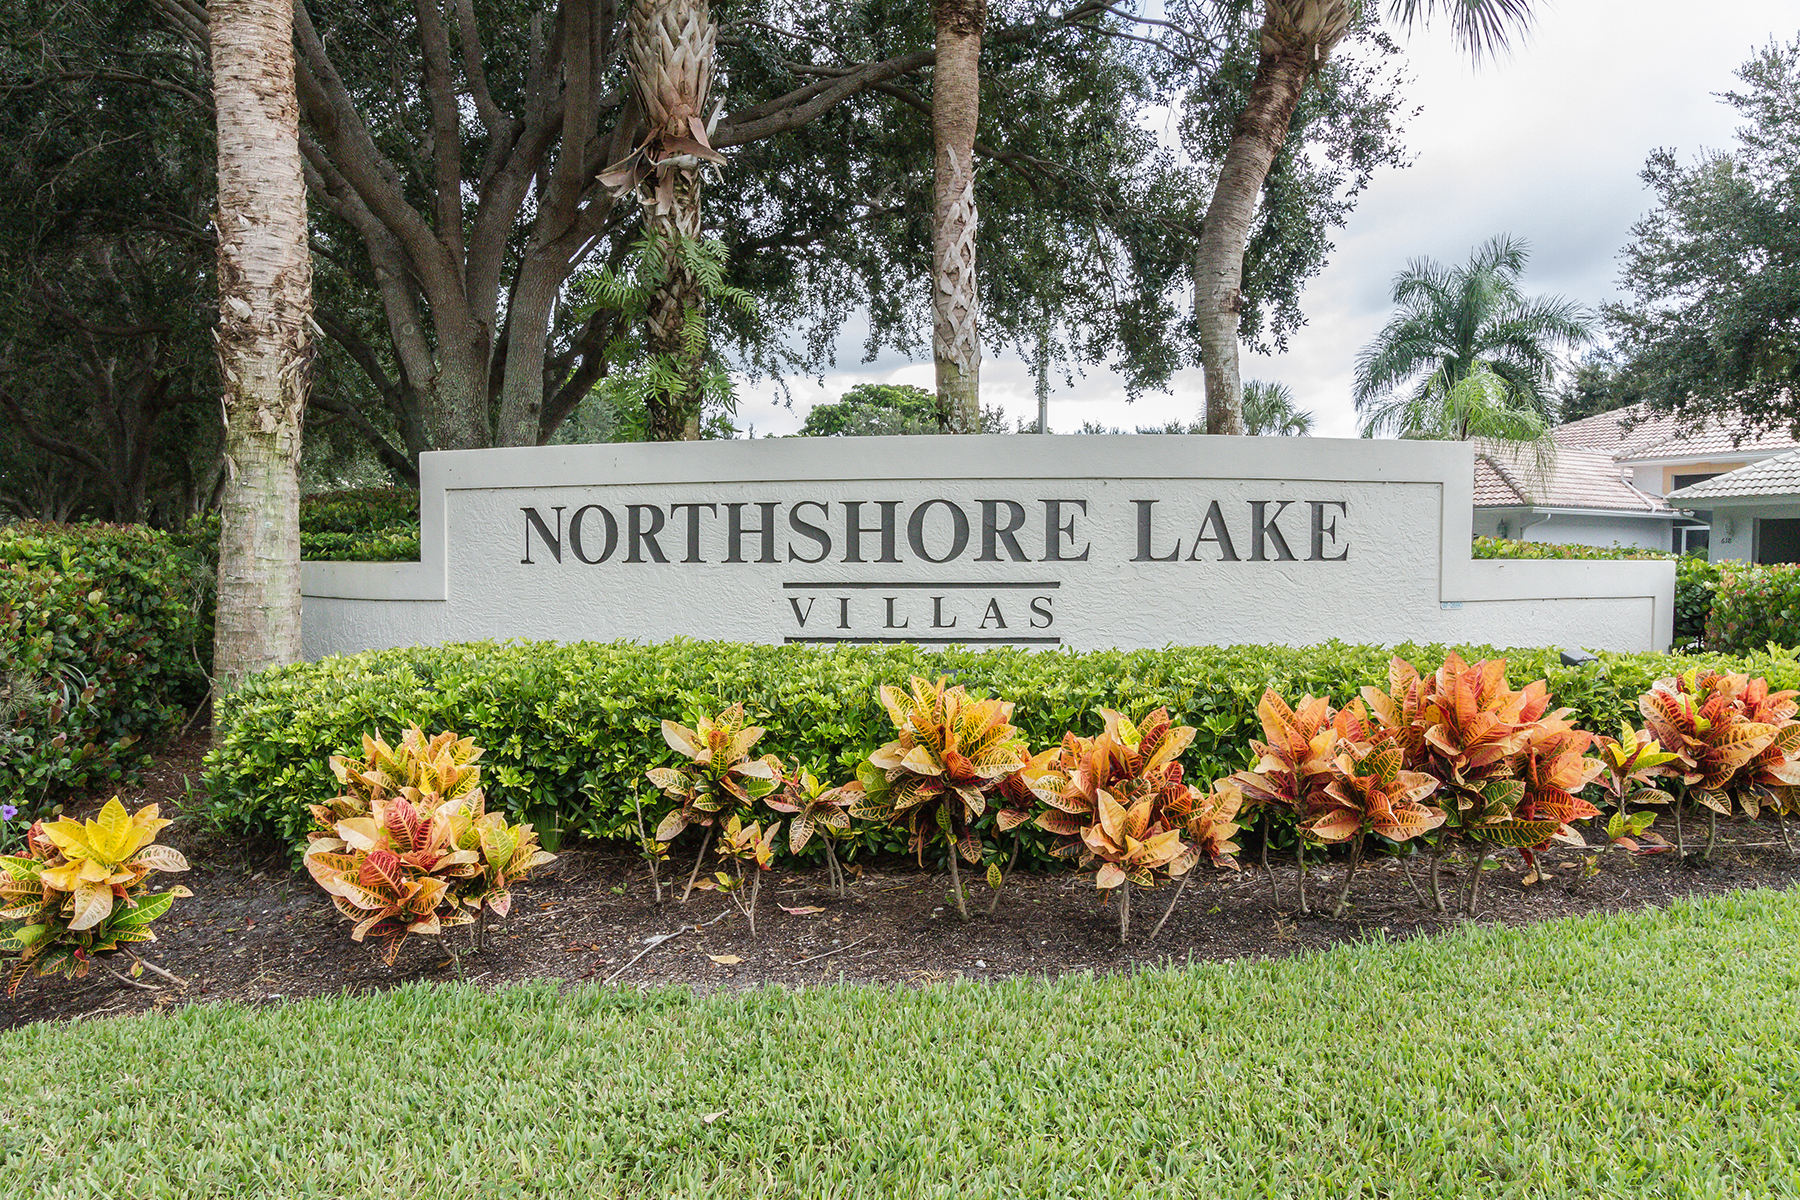 Property Of NORTHSHORE - NORTHSHORE LAKE VLLAS